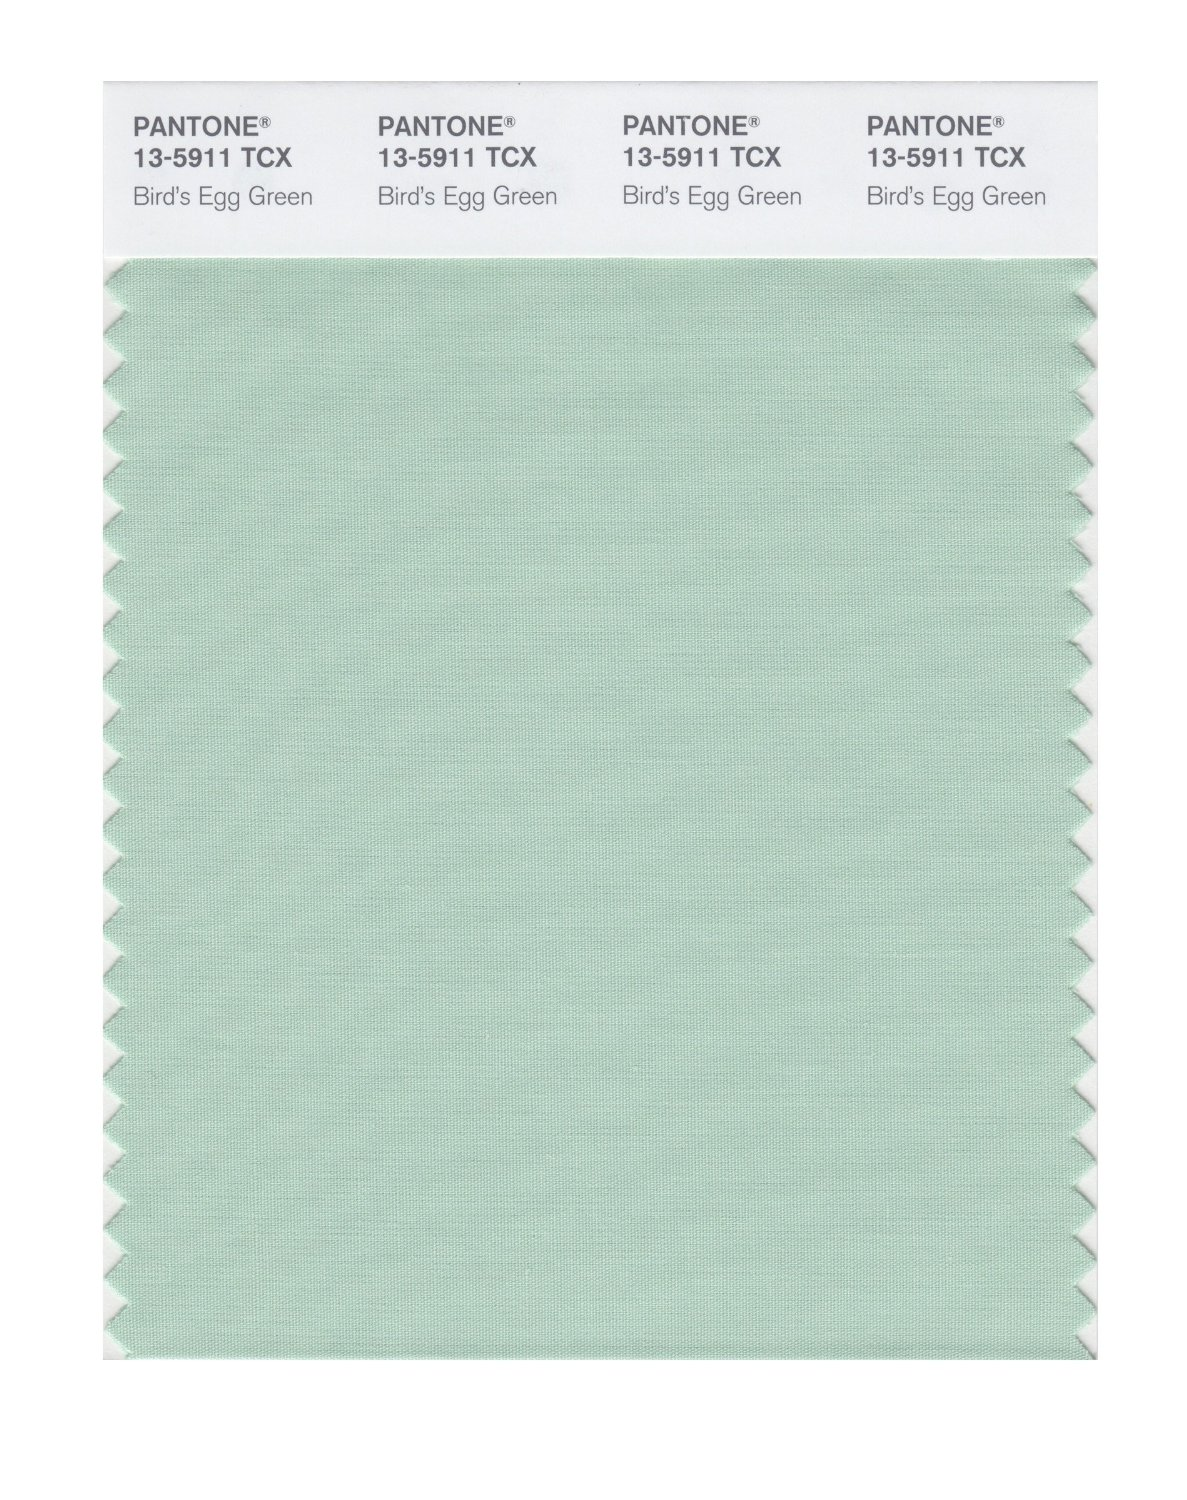 Pantone Smart Swatch 13-5911 Bird's Egg Green